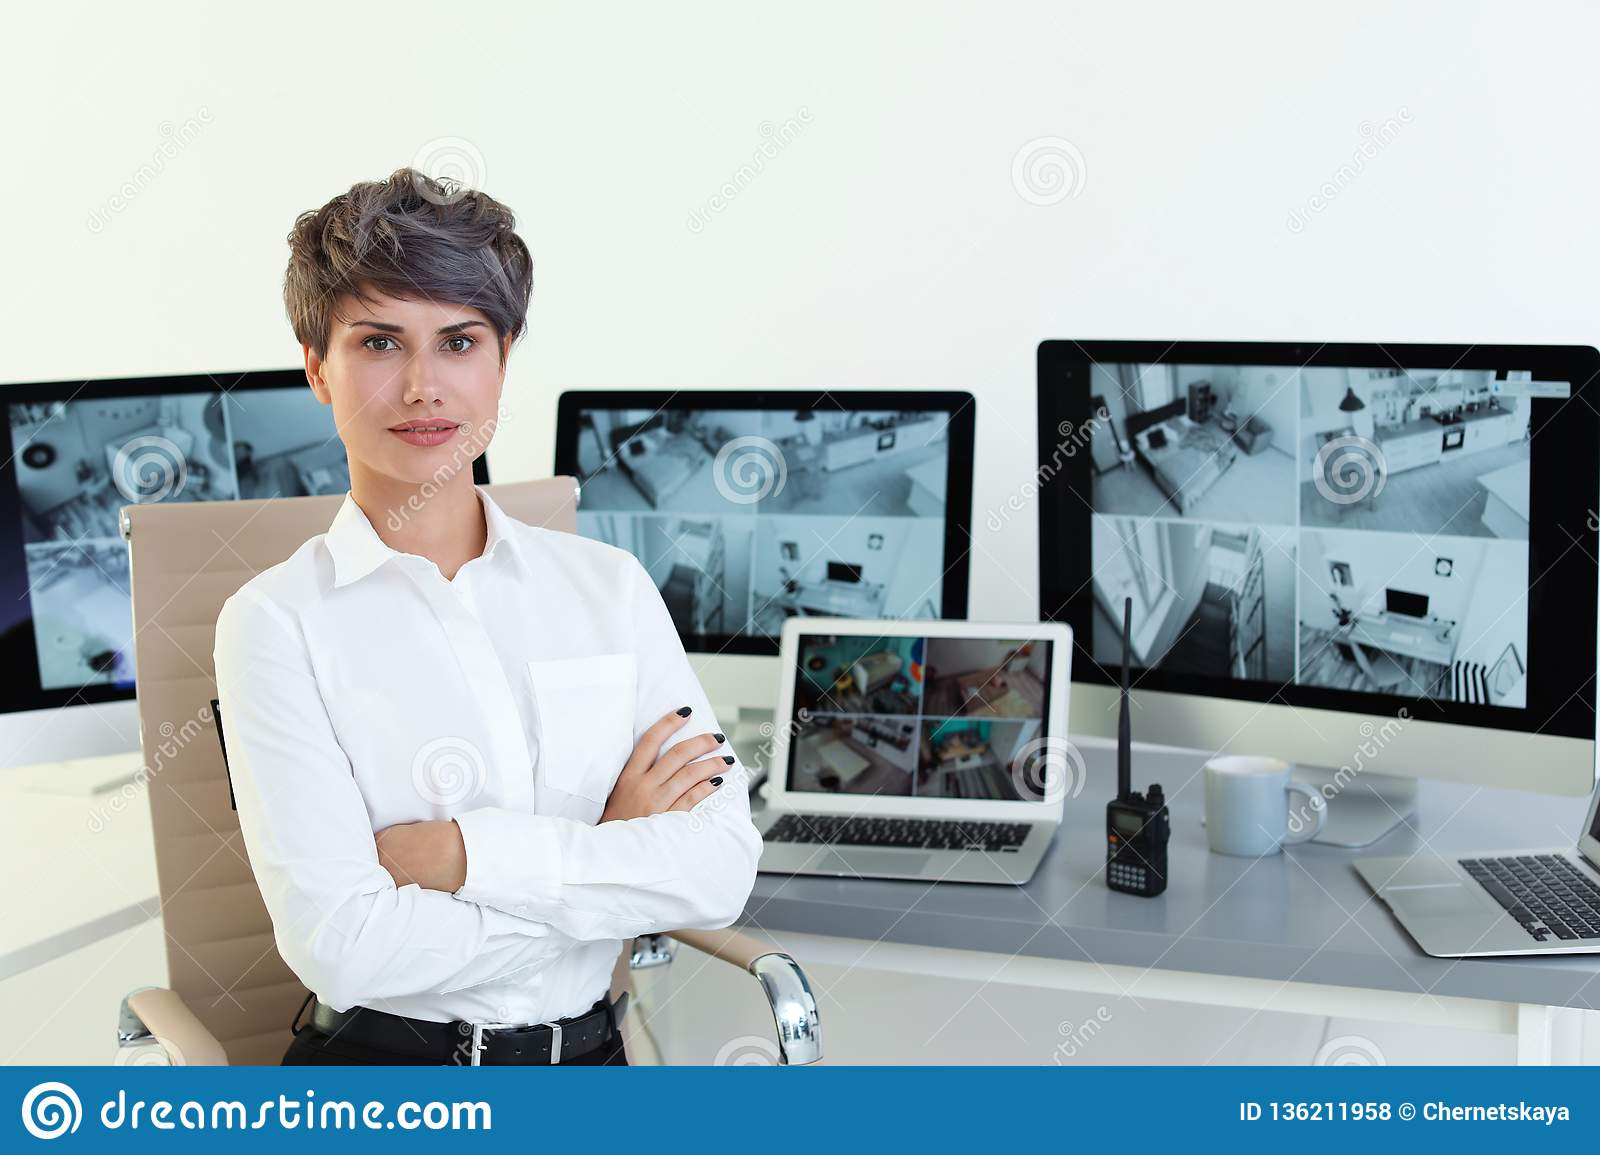 Female security guard at workplace with modern computers